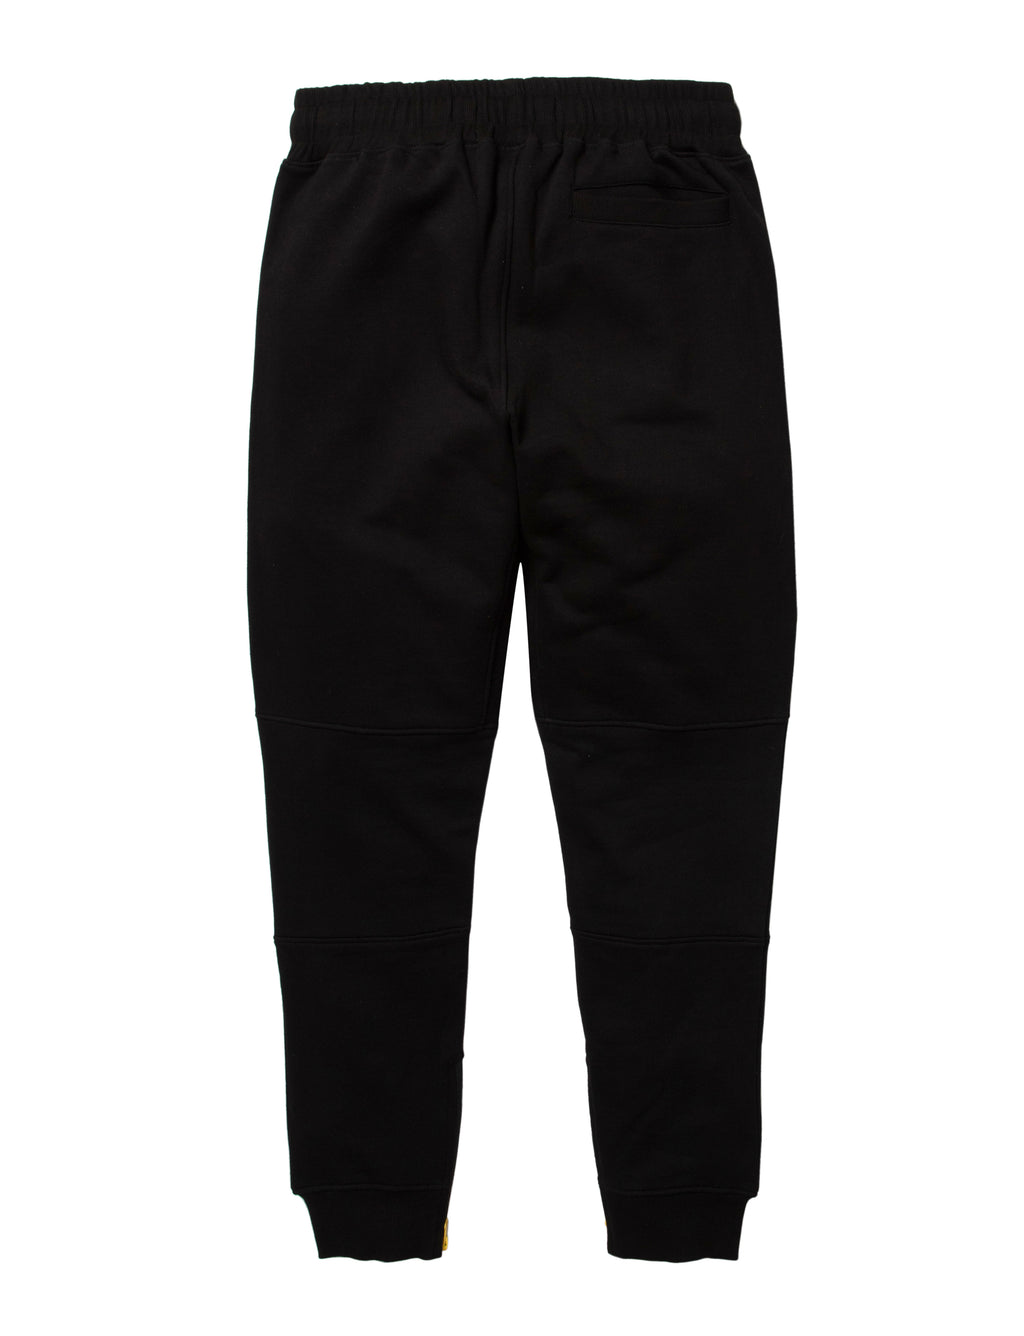 Atl International Sweatpant